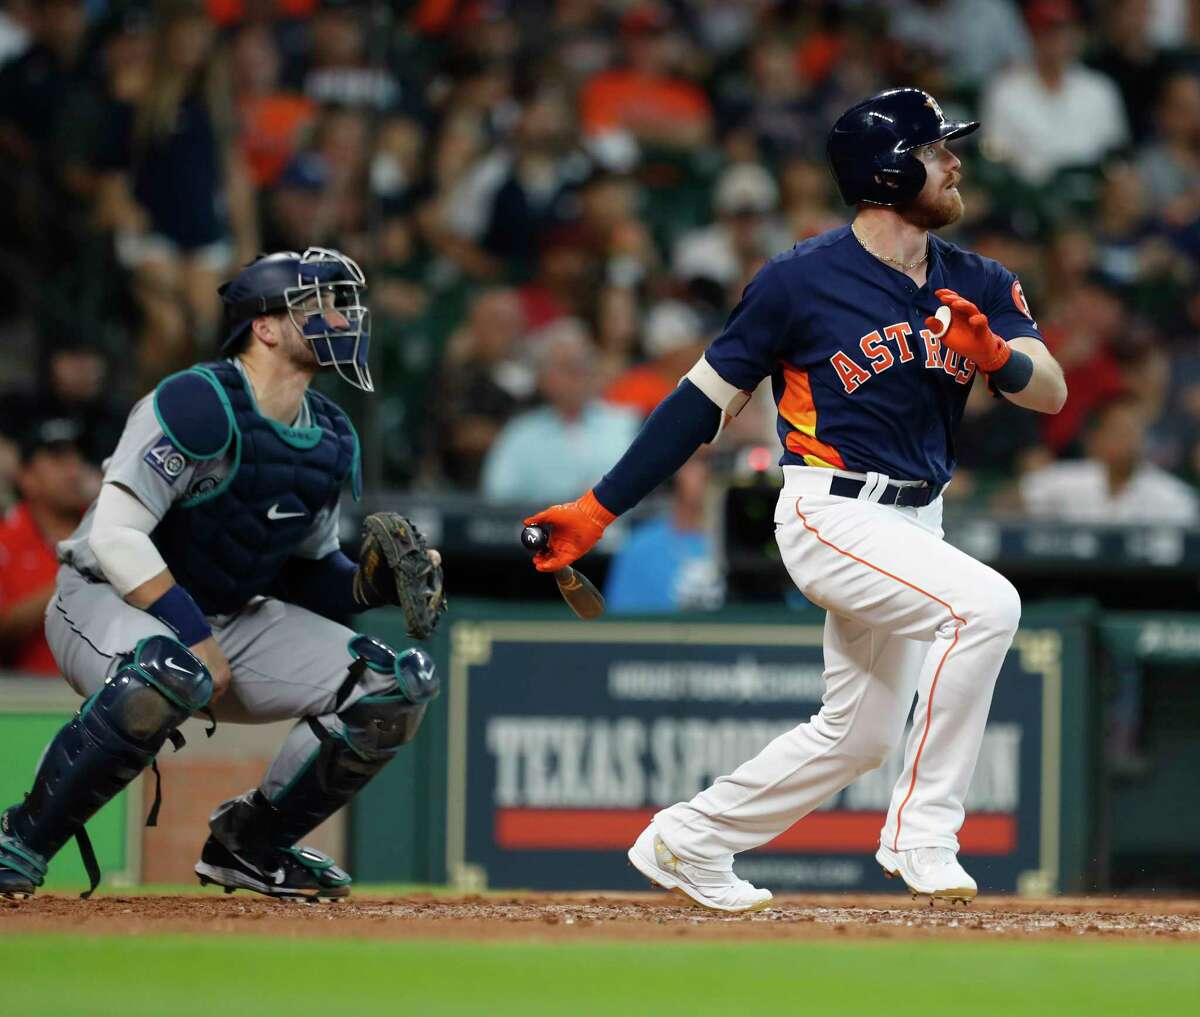 Houston Astros left fielder Derek Fisher (21) hits a two run home run during the fifth inning of an MLB baseball game at Minute Maid Park, Sunday, Sept. 17, 2017, in Houston.